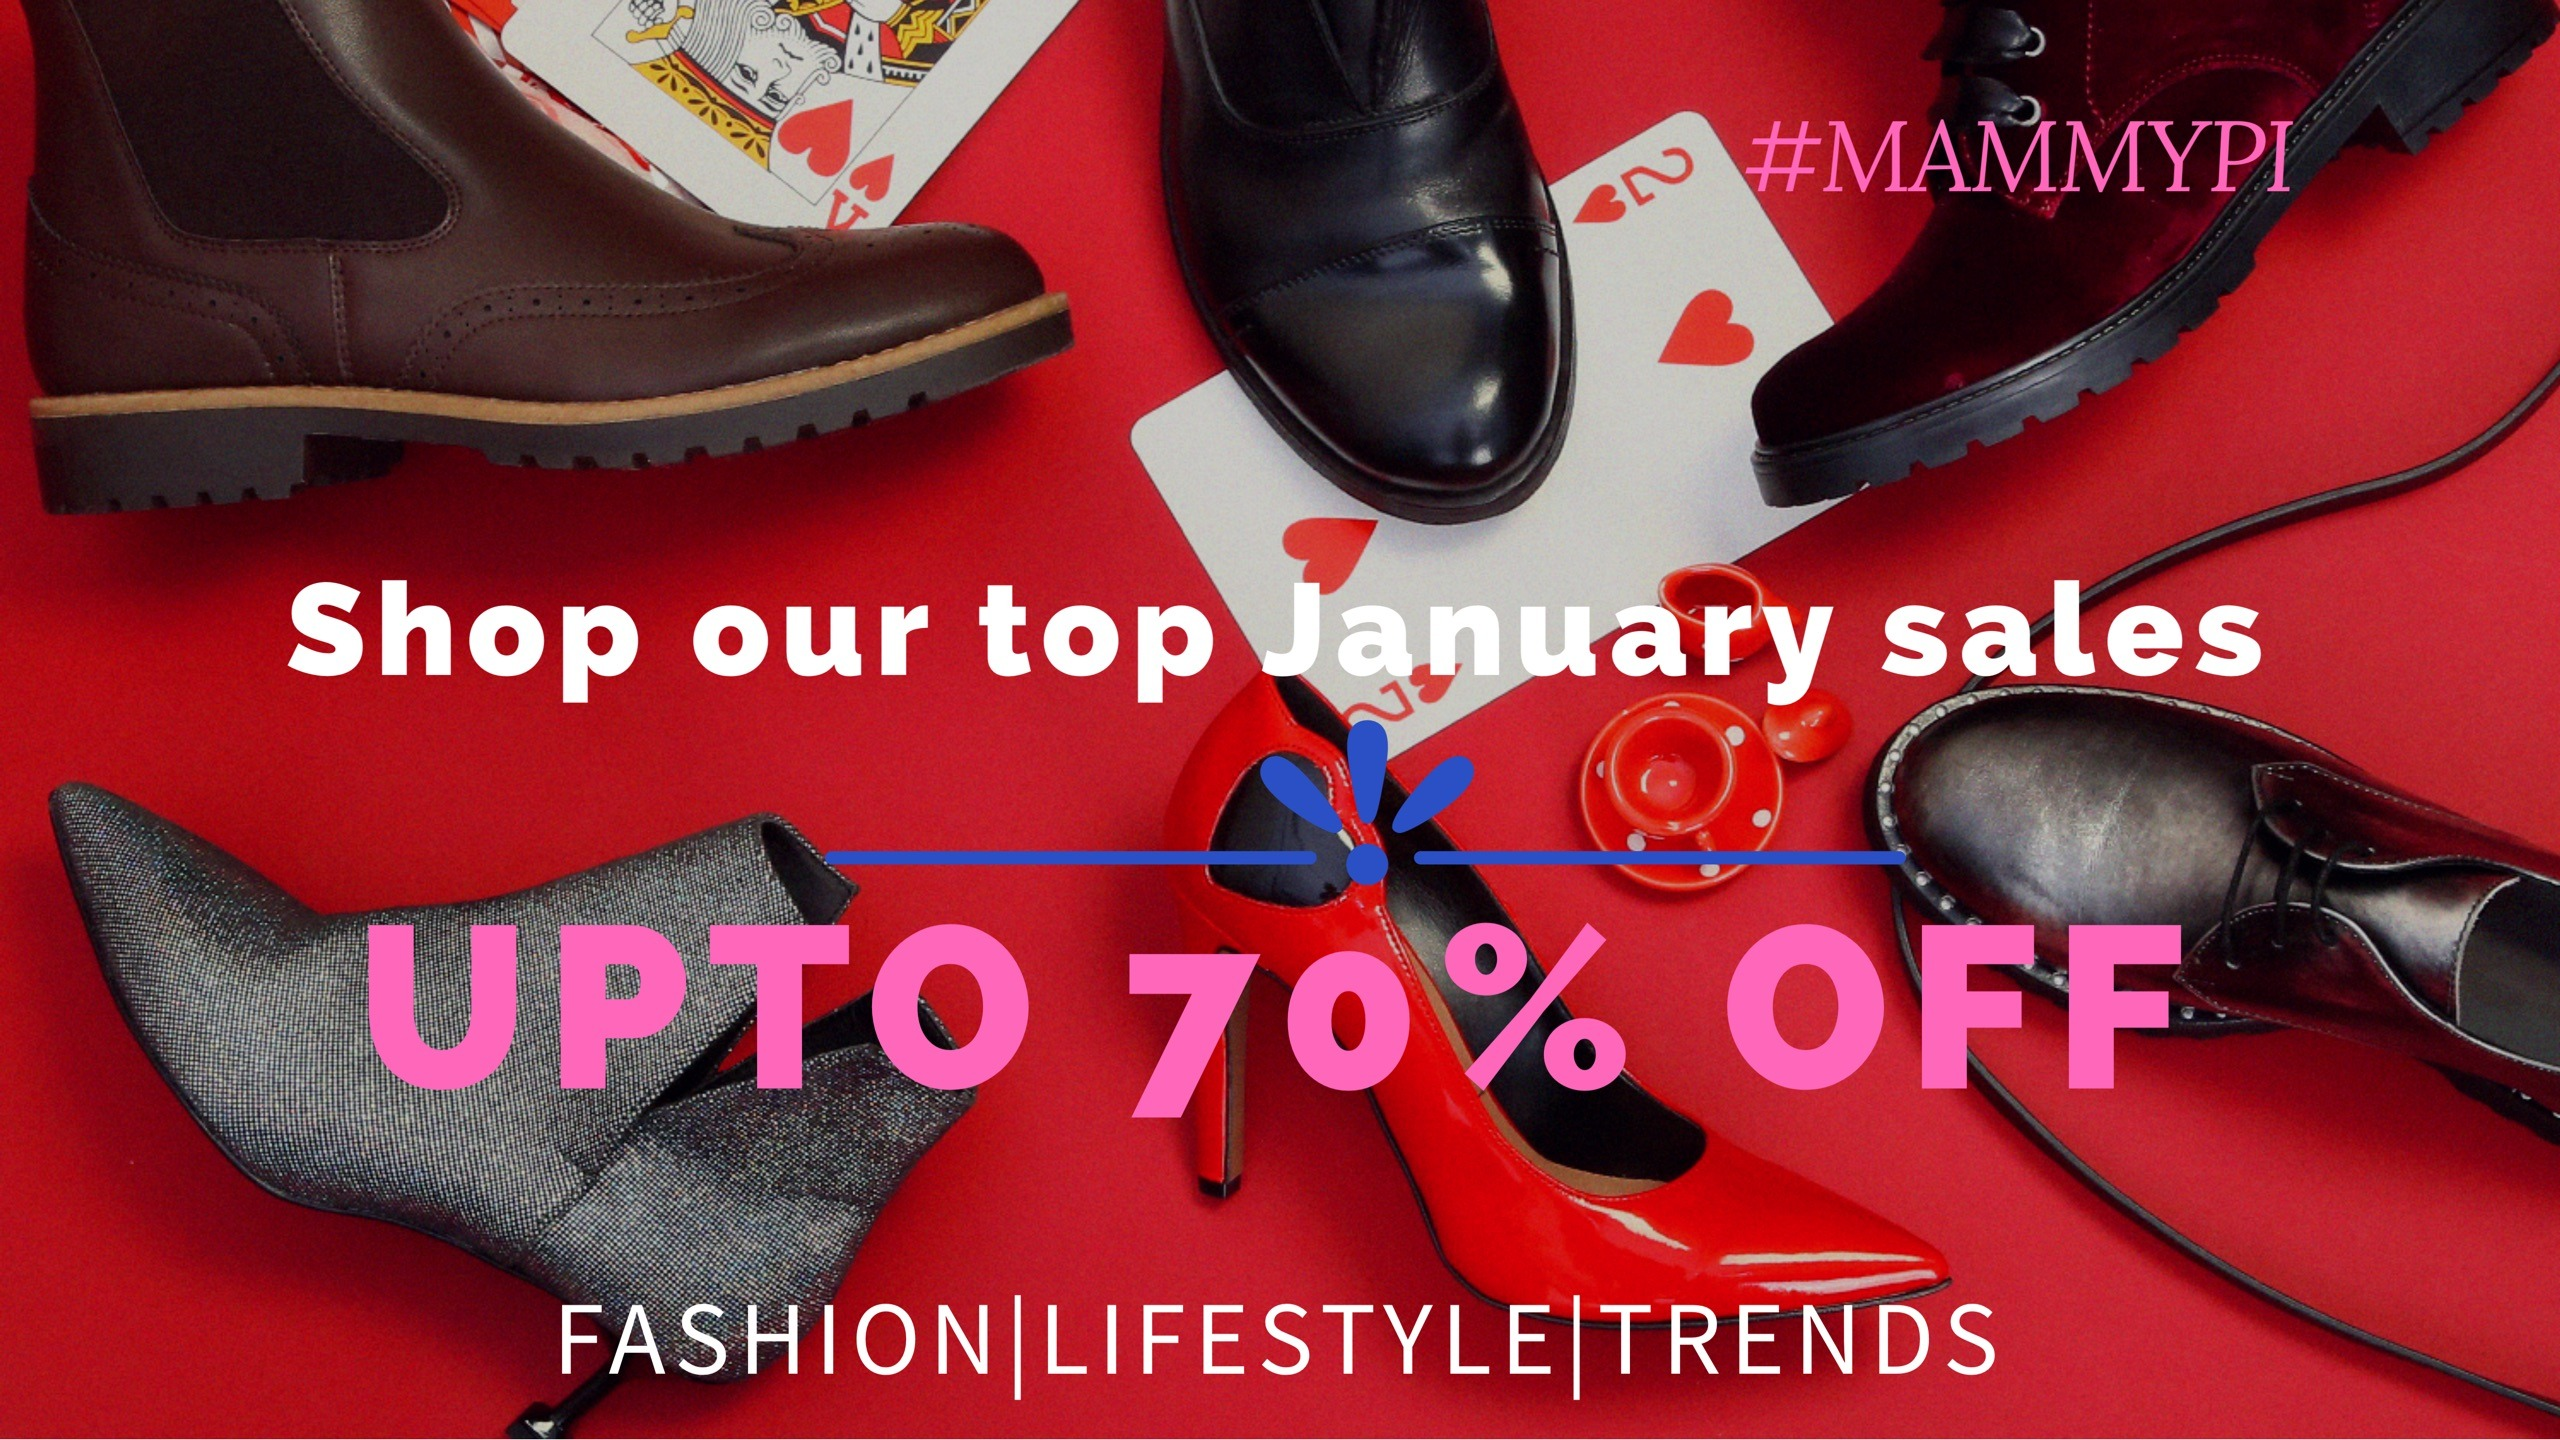 SHOP MY TOP 10 JANUARY SALES GOING ON FROM THE COMFORT OF YOUR HOME